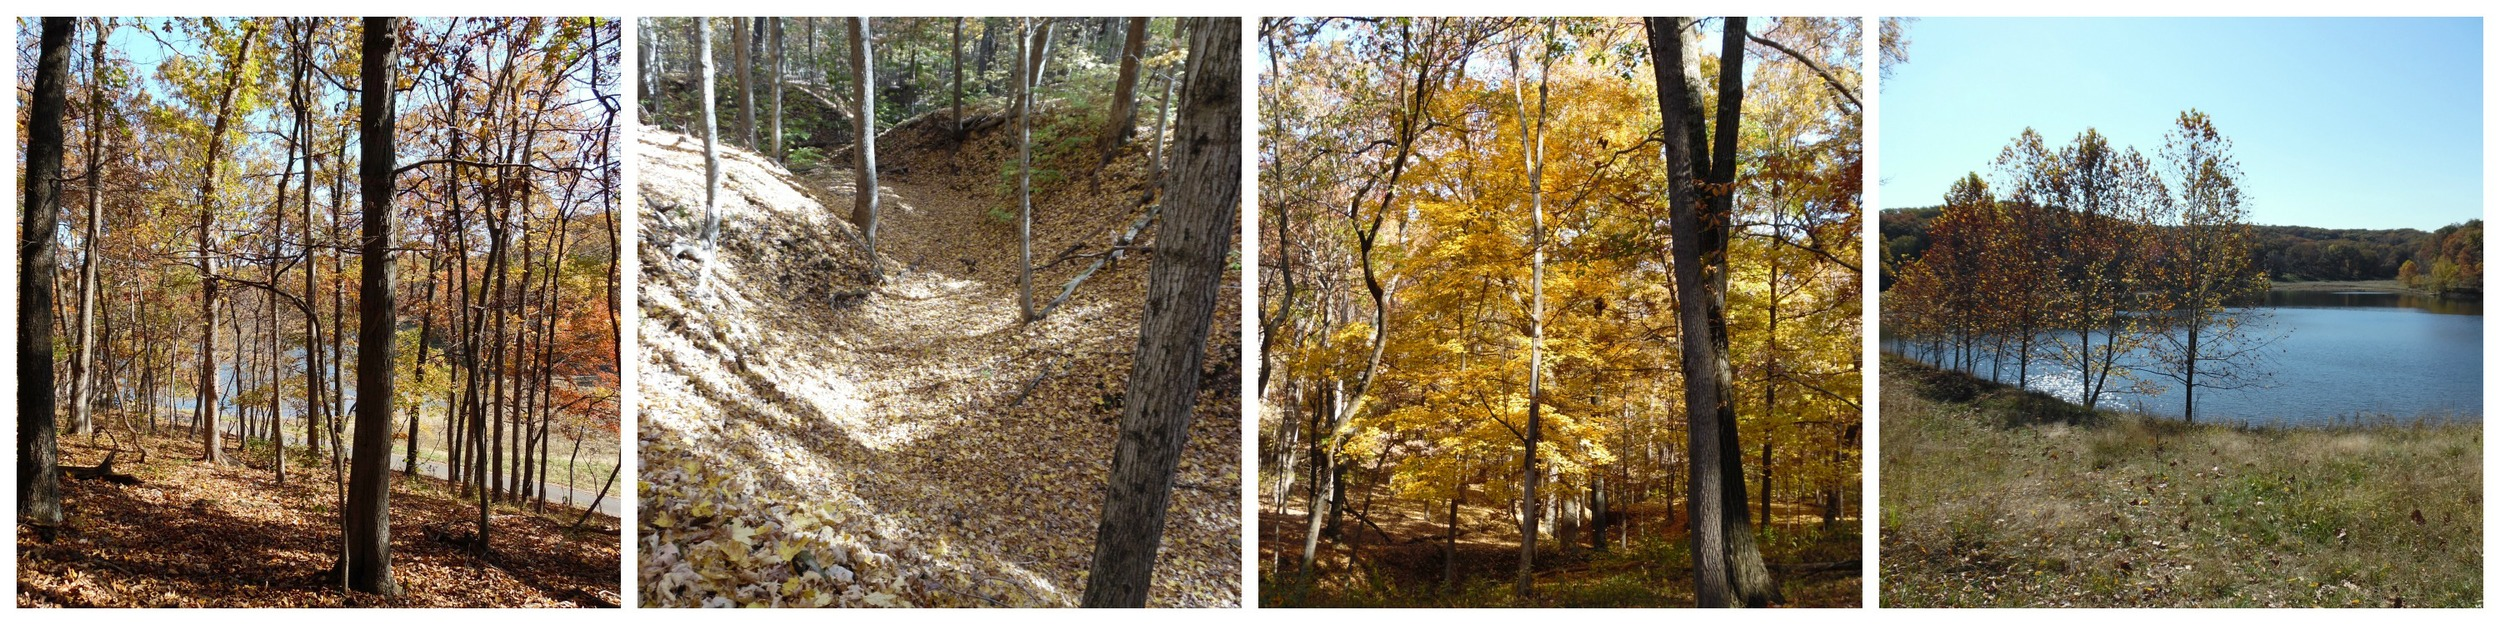 It's a beautiful time of year for hiking!